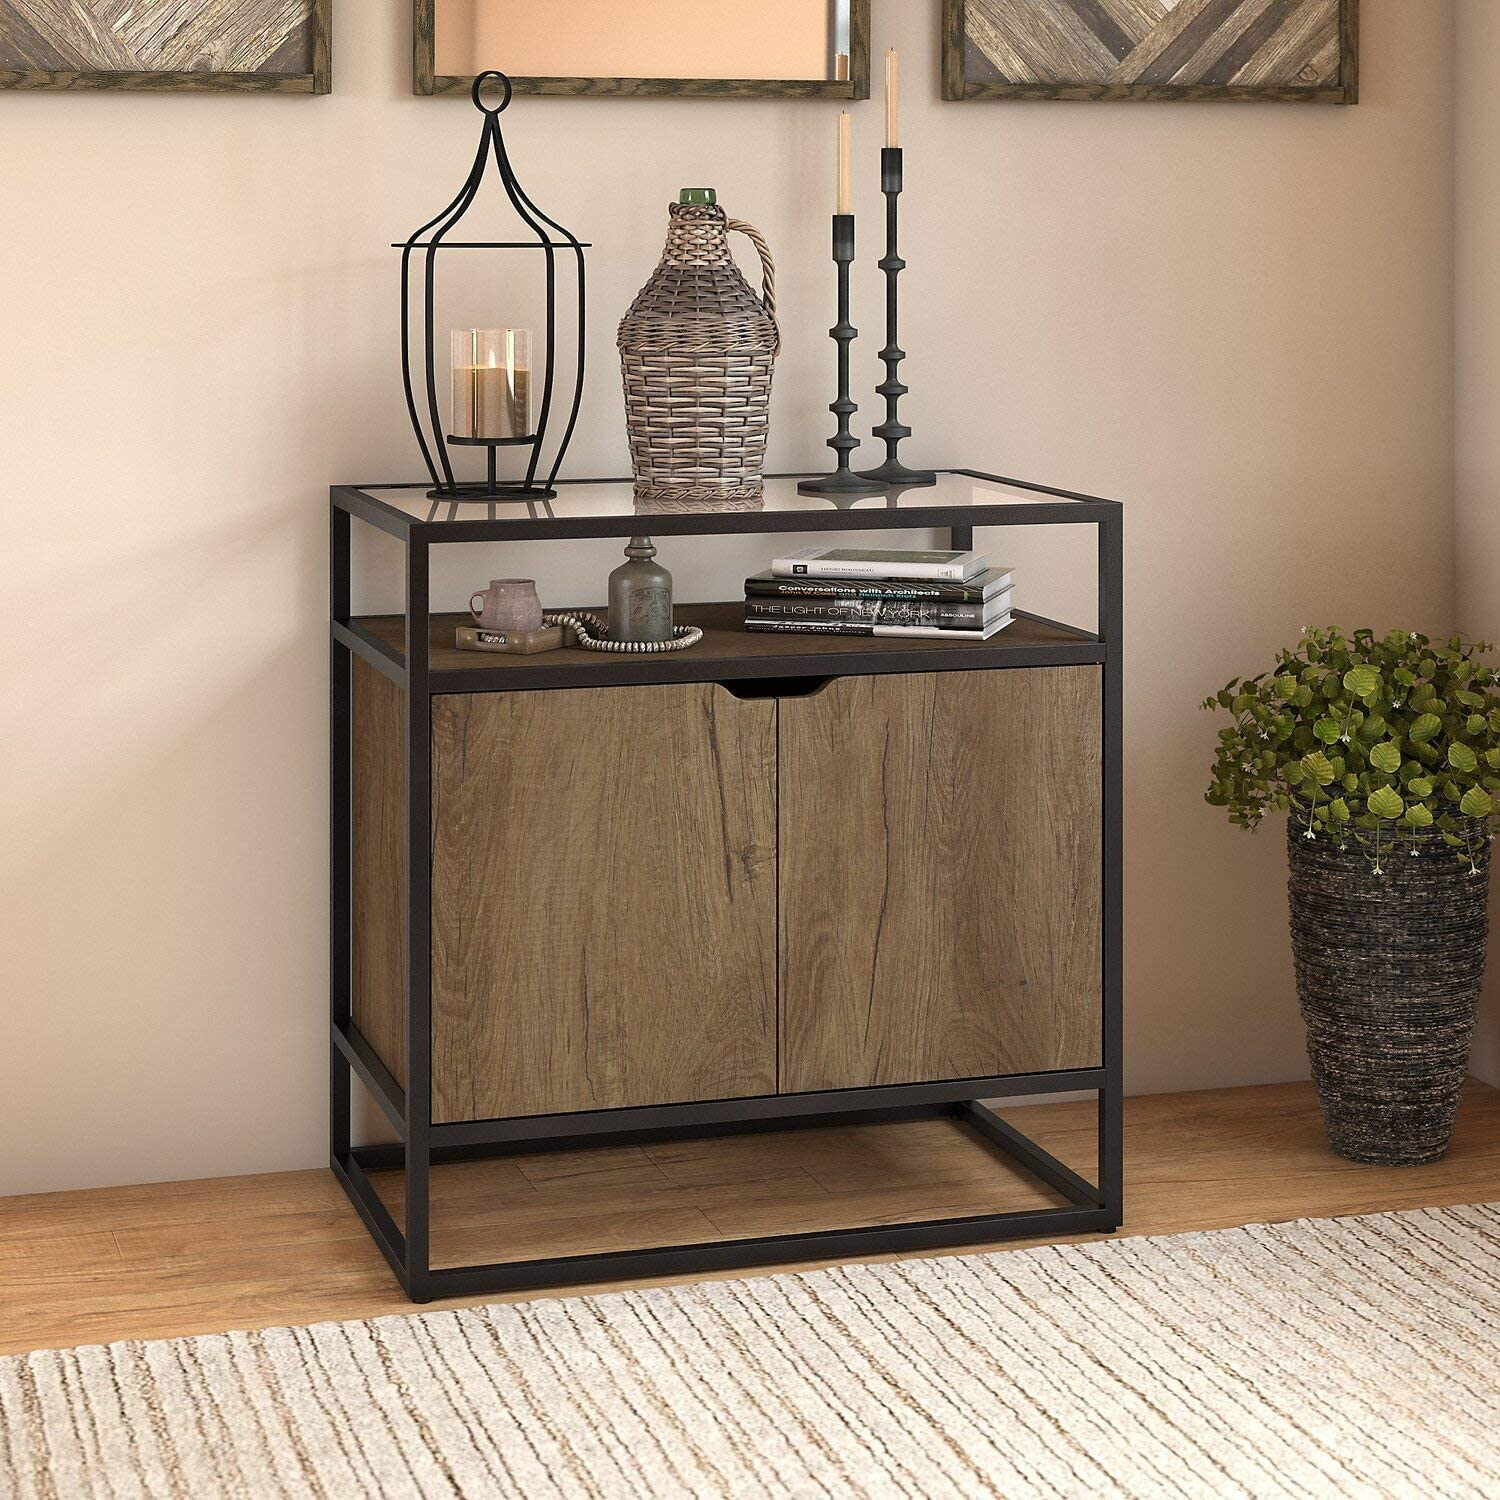 Bush Furniture Anthropology Small Storage Cabinet with Doors in Rustic Brown Embossed